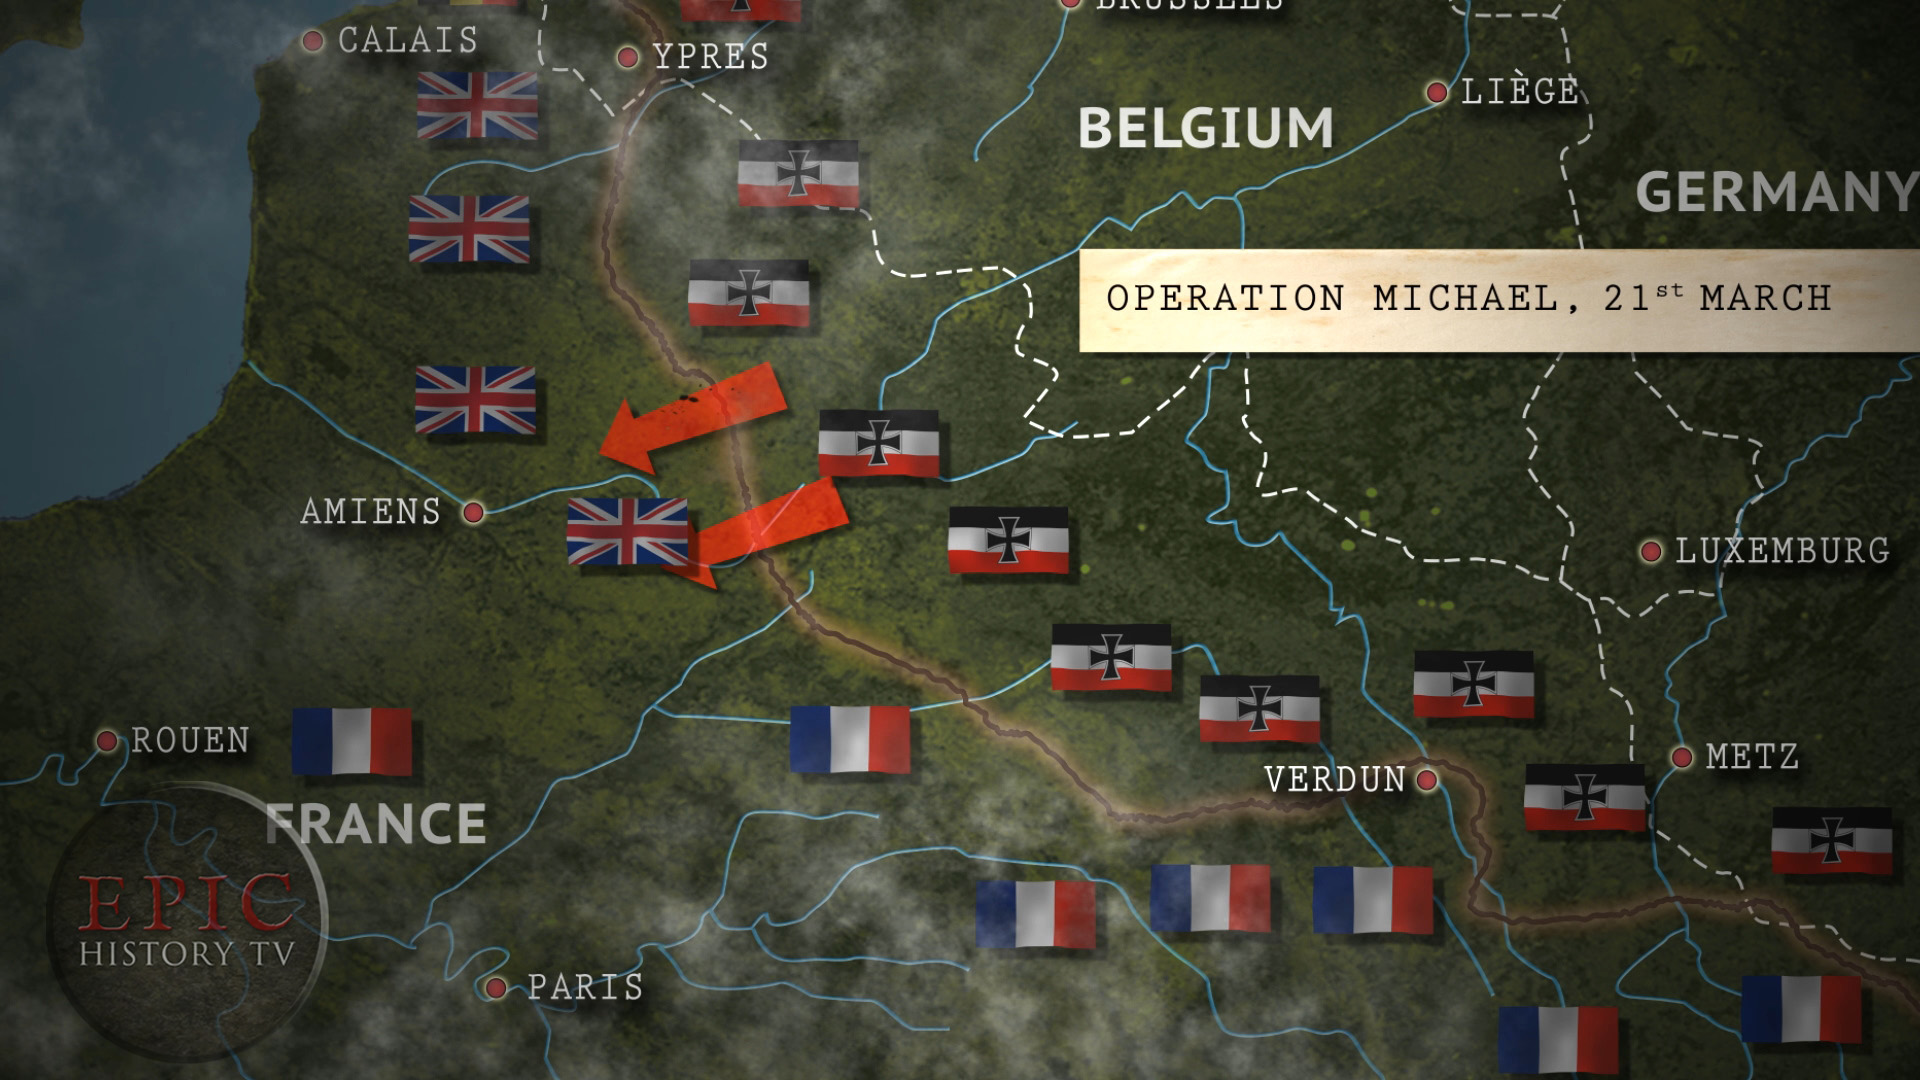 Operation Michael was the German codename for the last, great German offensive on the Western Front in World War One. Also known as the Ludendorff or Spring Offensive, this was Germany's last roll of the dice, a desperate attempt to win the war before American troops arrived in Europe in serious numbers. Despite initial success, the offensive was ultimately a costly disaster for Germany. WATCH THE VIDEO